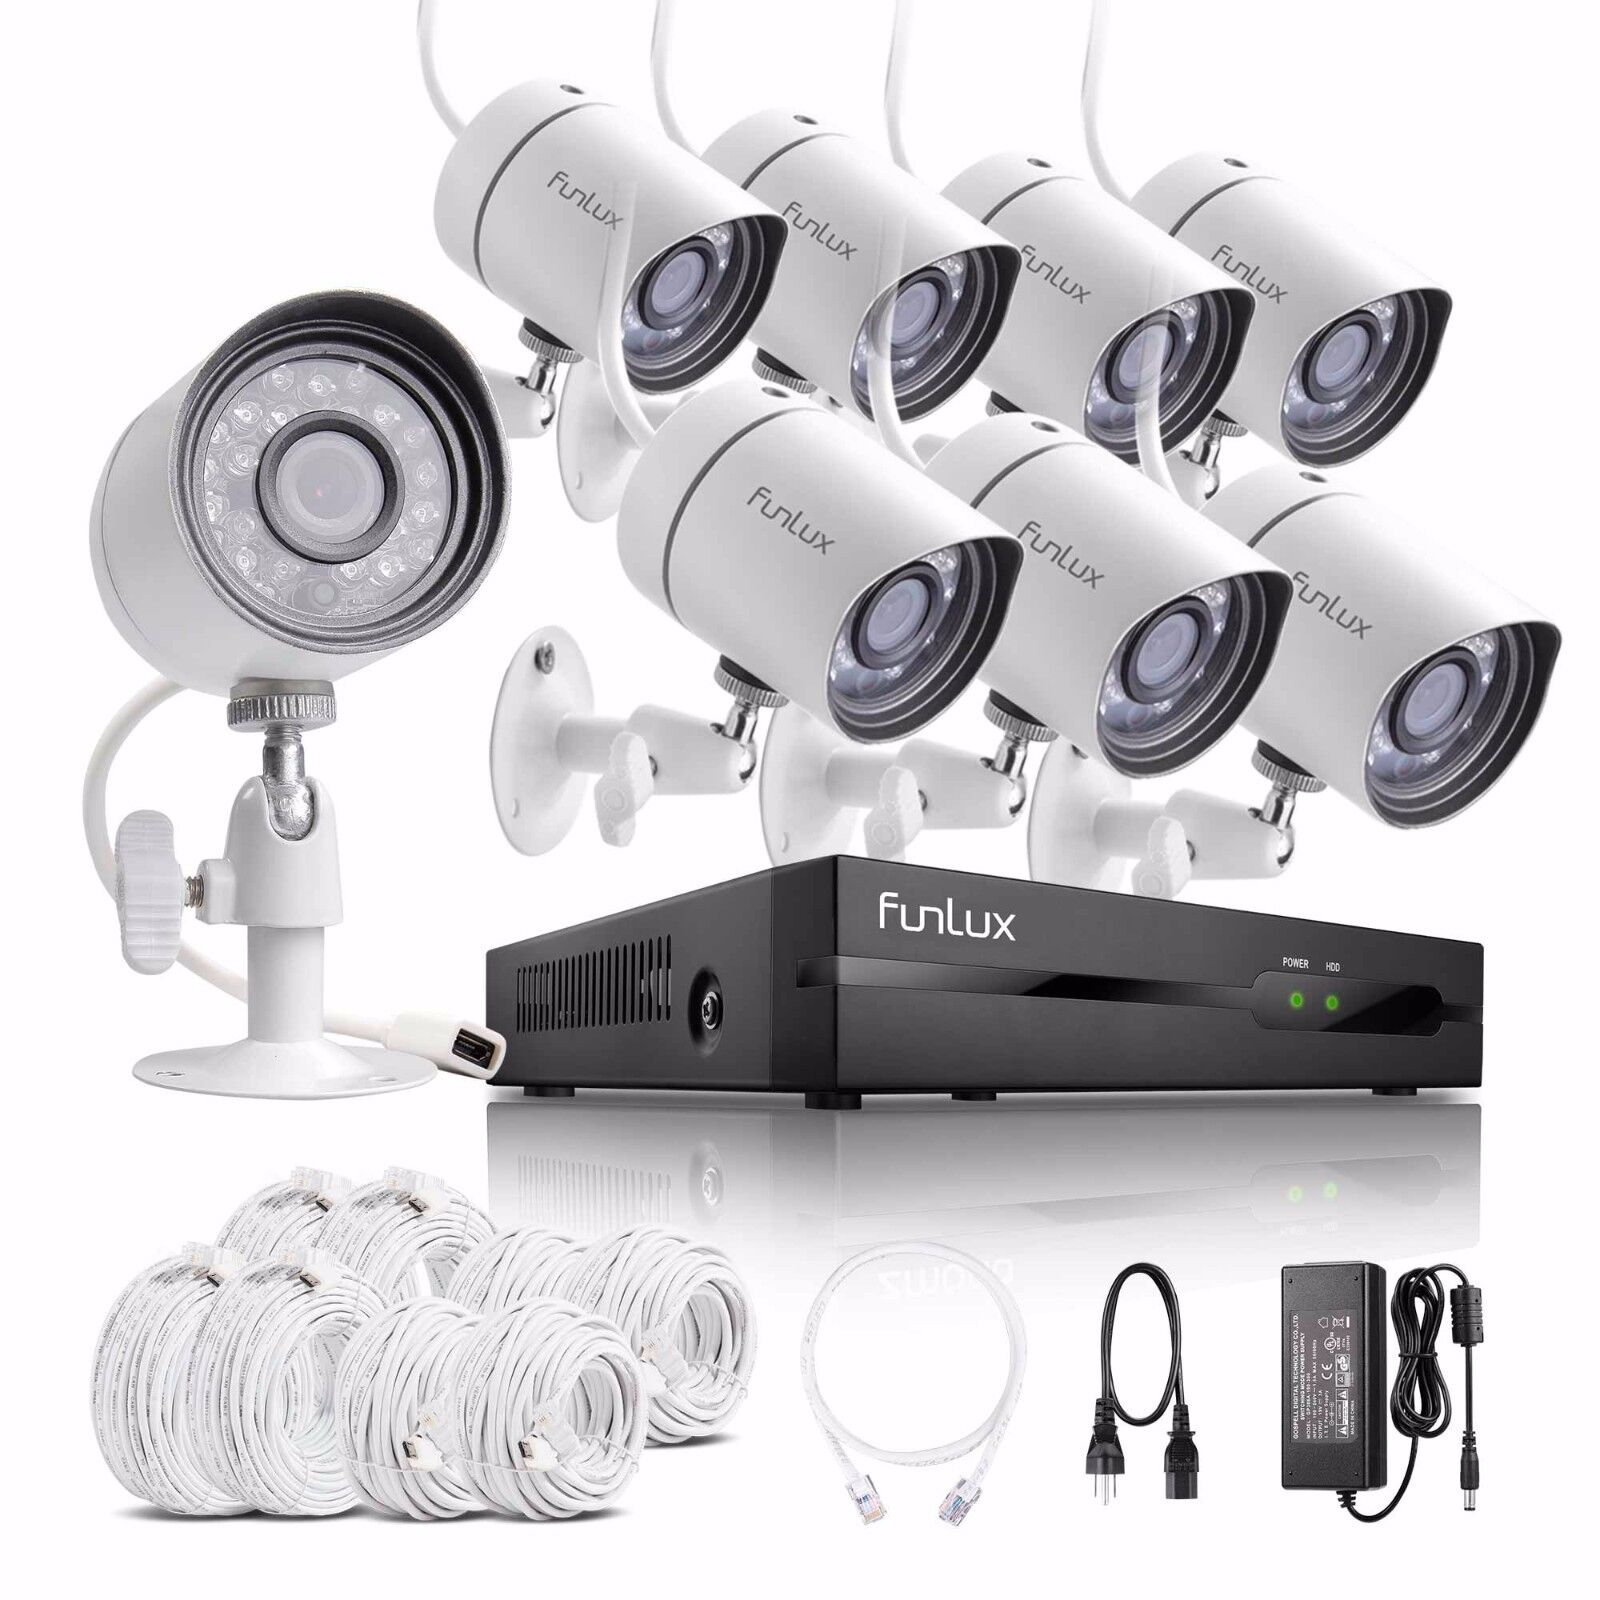 Купить Funlux - Funlux 1080p 8CH HDMI NVR w/ 8 720p IP CCTV IR-cut Camera Home Security System